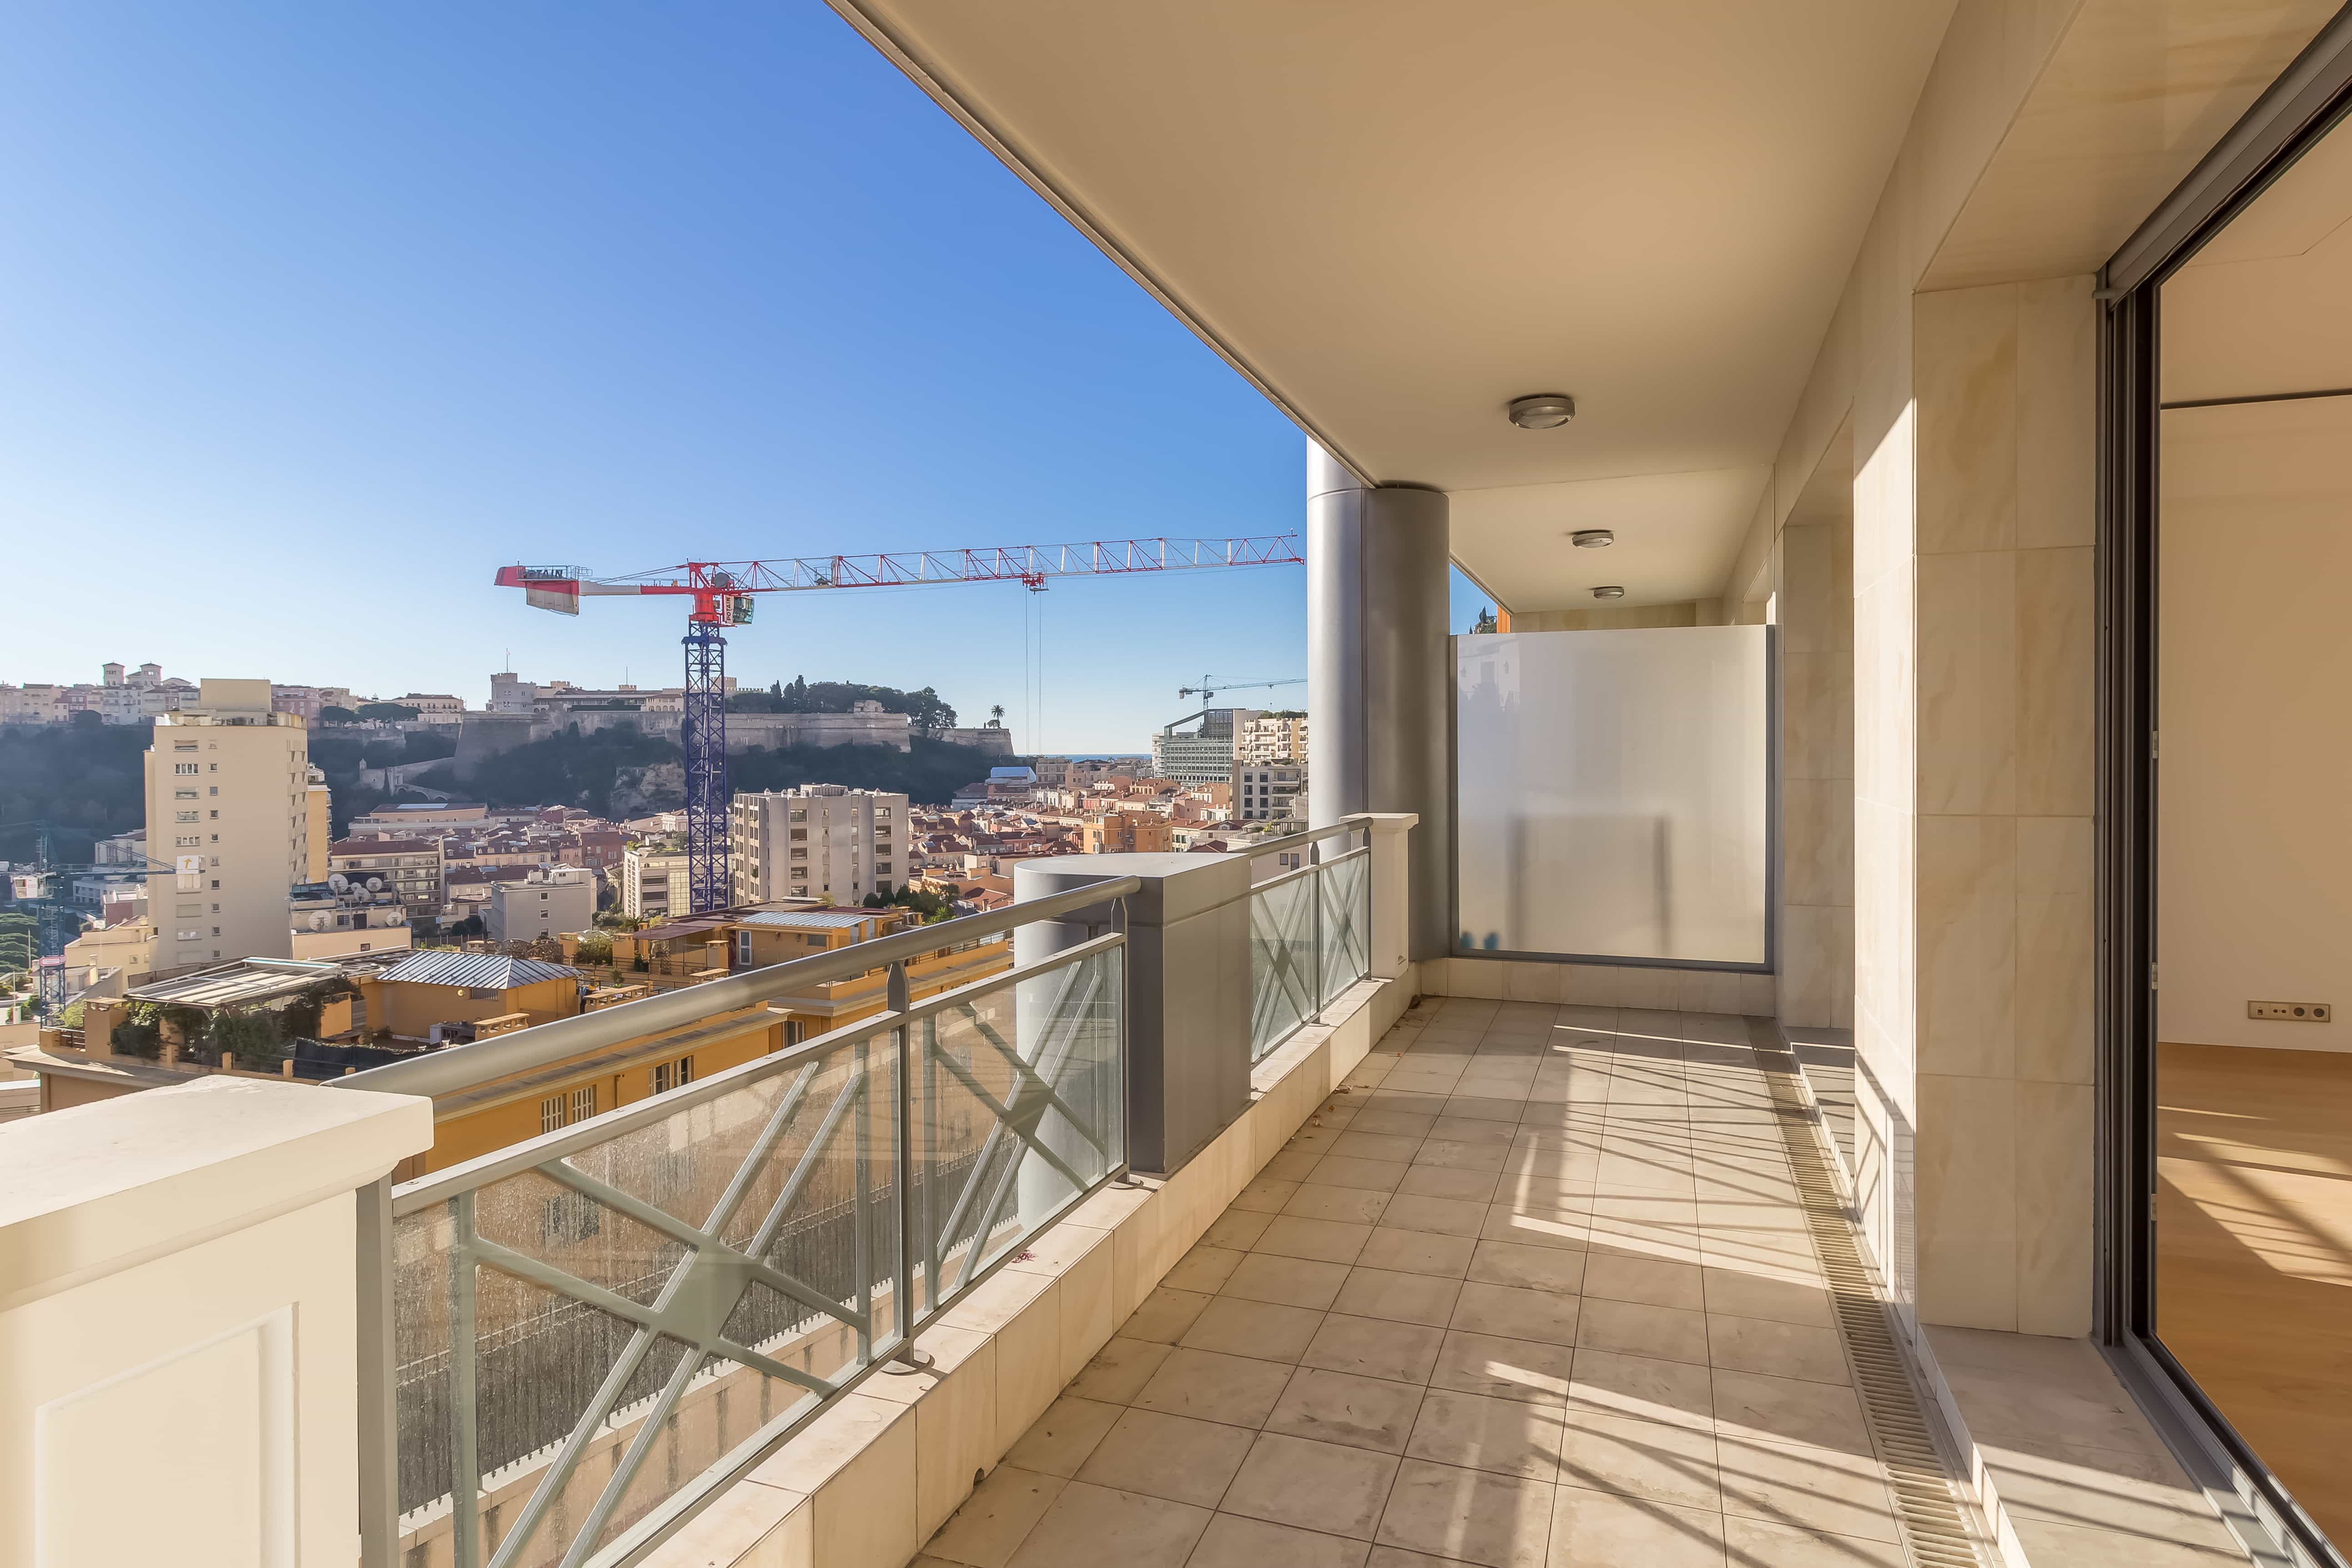 Monaco Properties - 3 roomed refurbished property - renovated building - (office use possible)